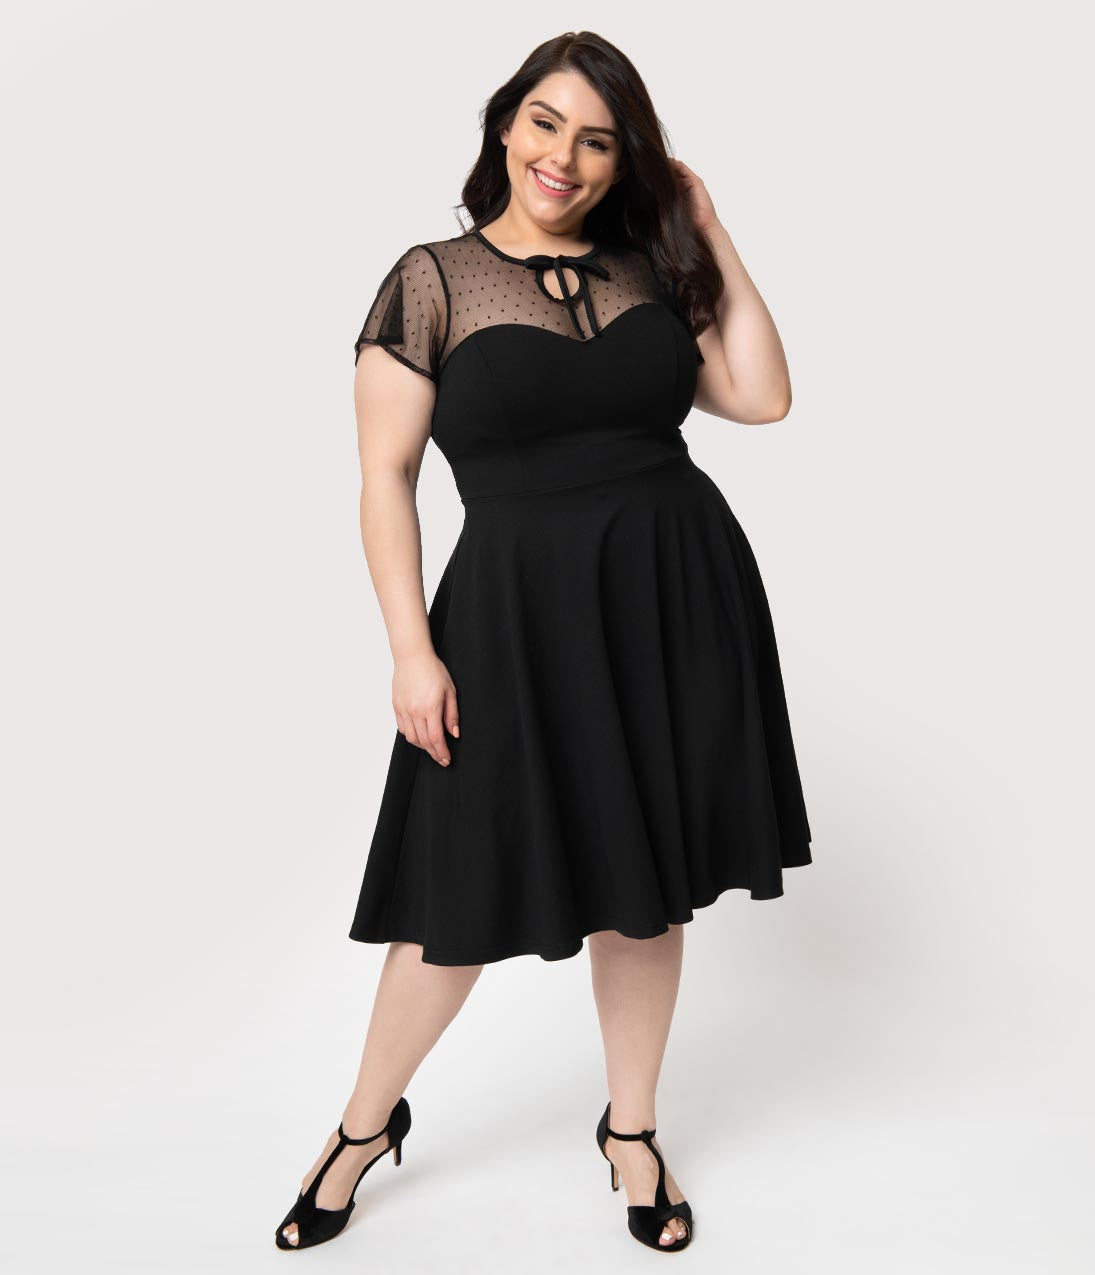 1940s Cocktail Dresses, Party Dresses Unique Vintage Plus Size 1940S Style Black Swiss Dotted Mesh Heather Midi Dress $98.00 AT vintagedancer.com